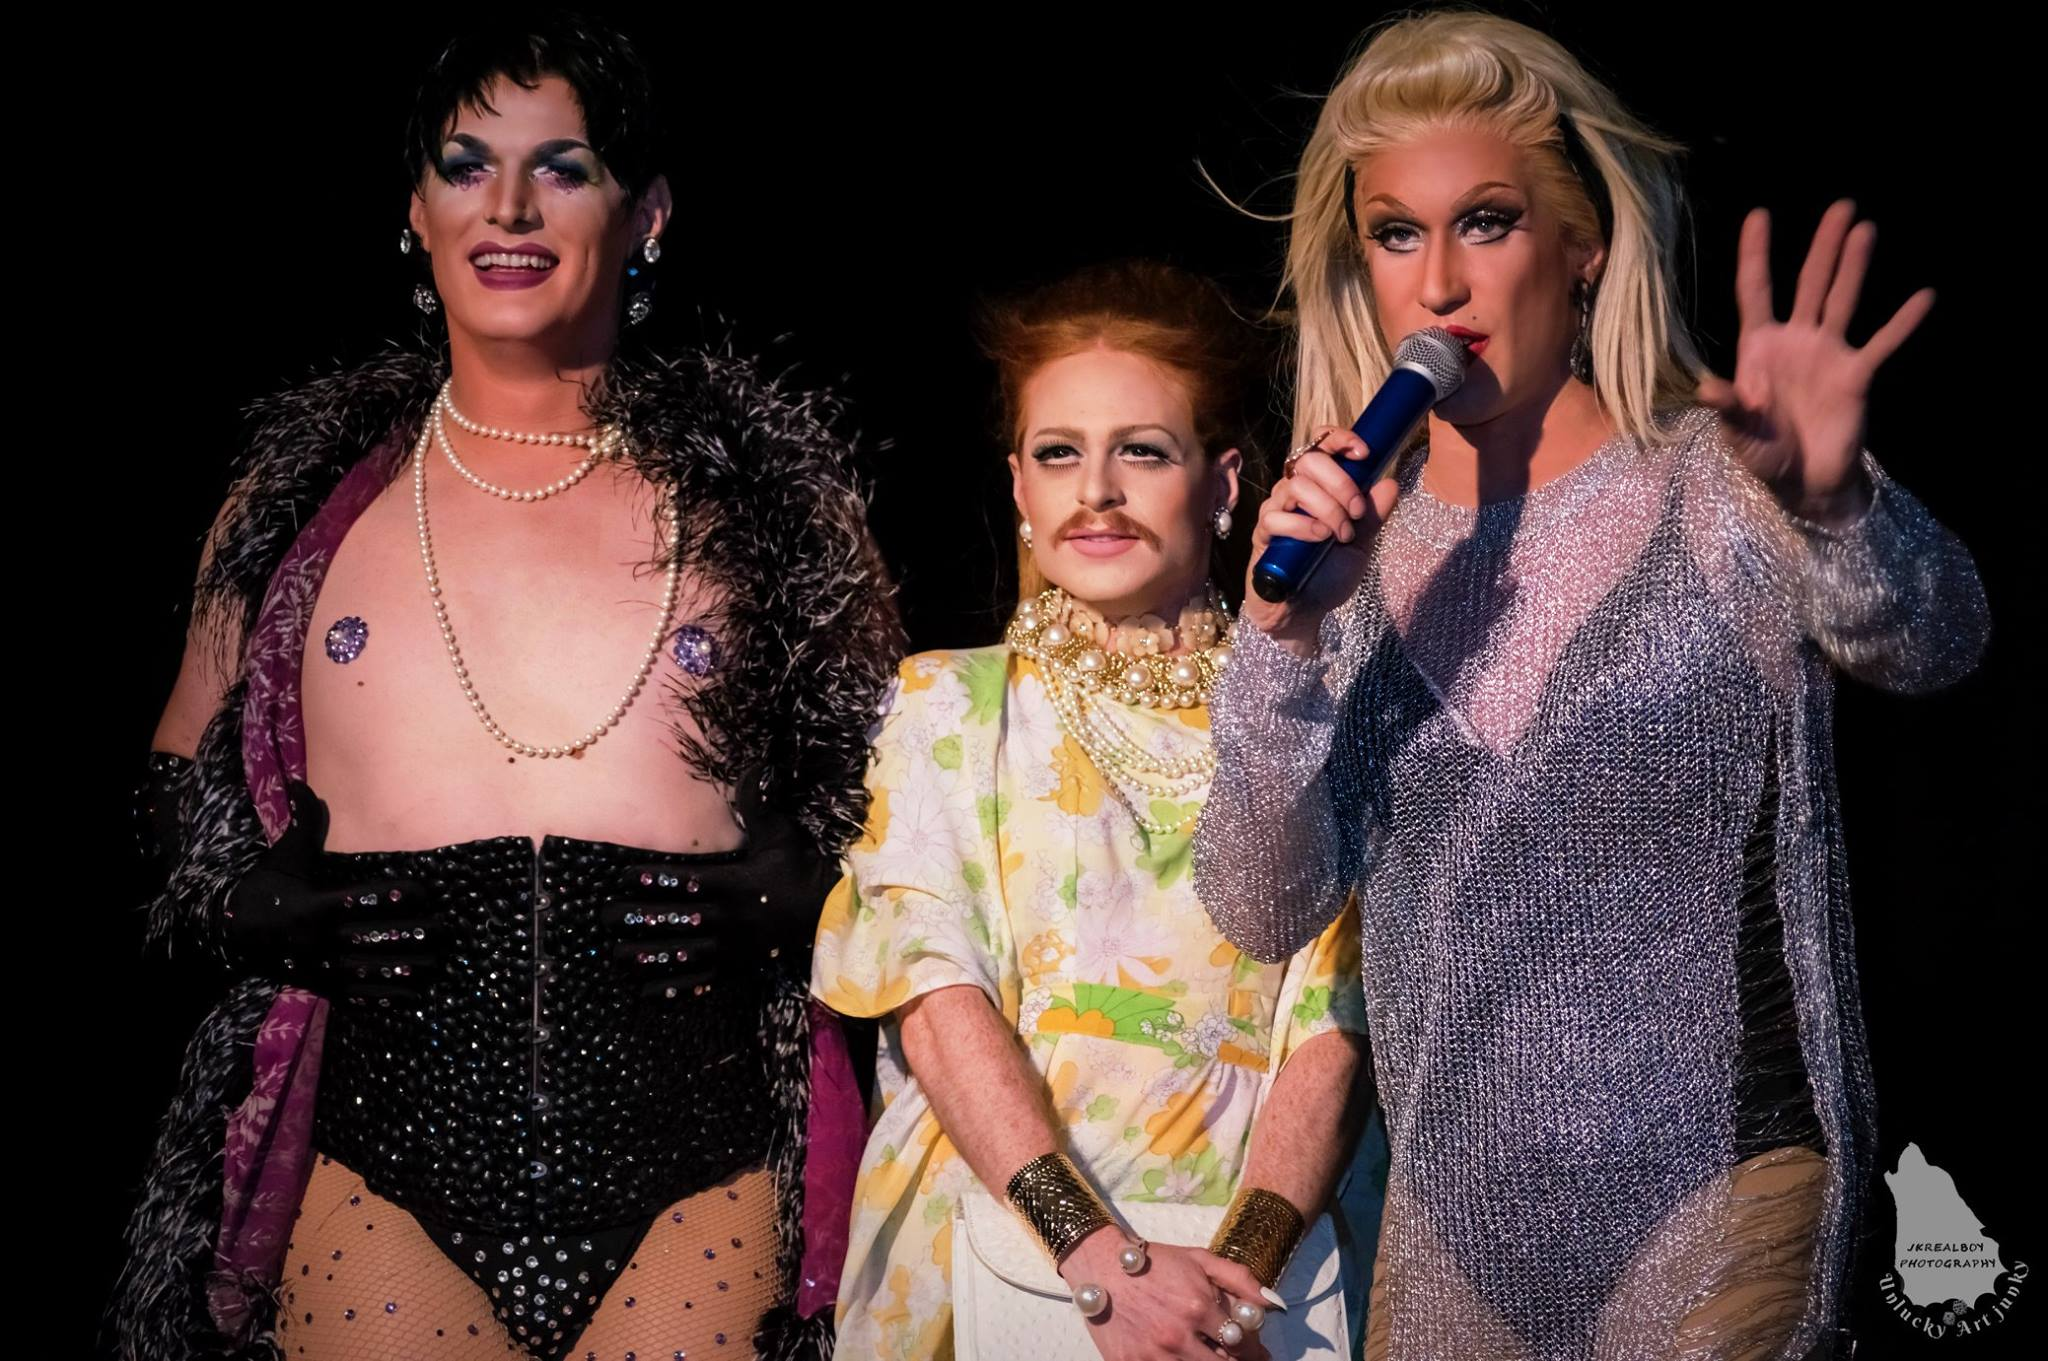 Miss Fire Island pageant contestants on stage